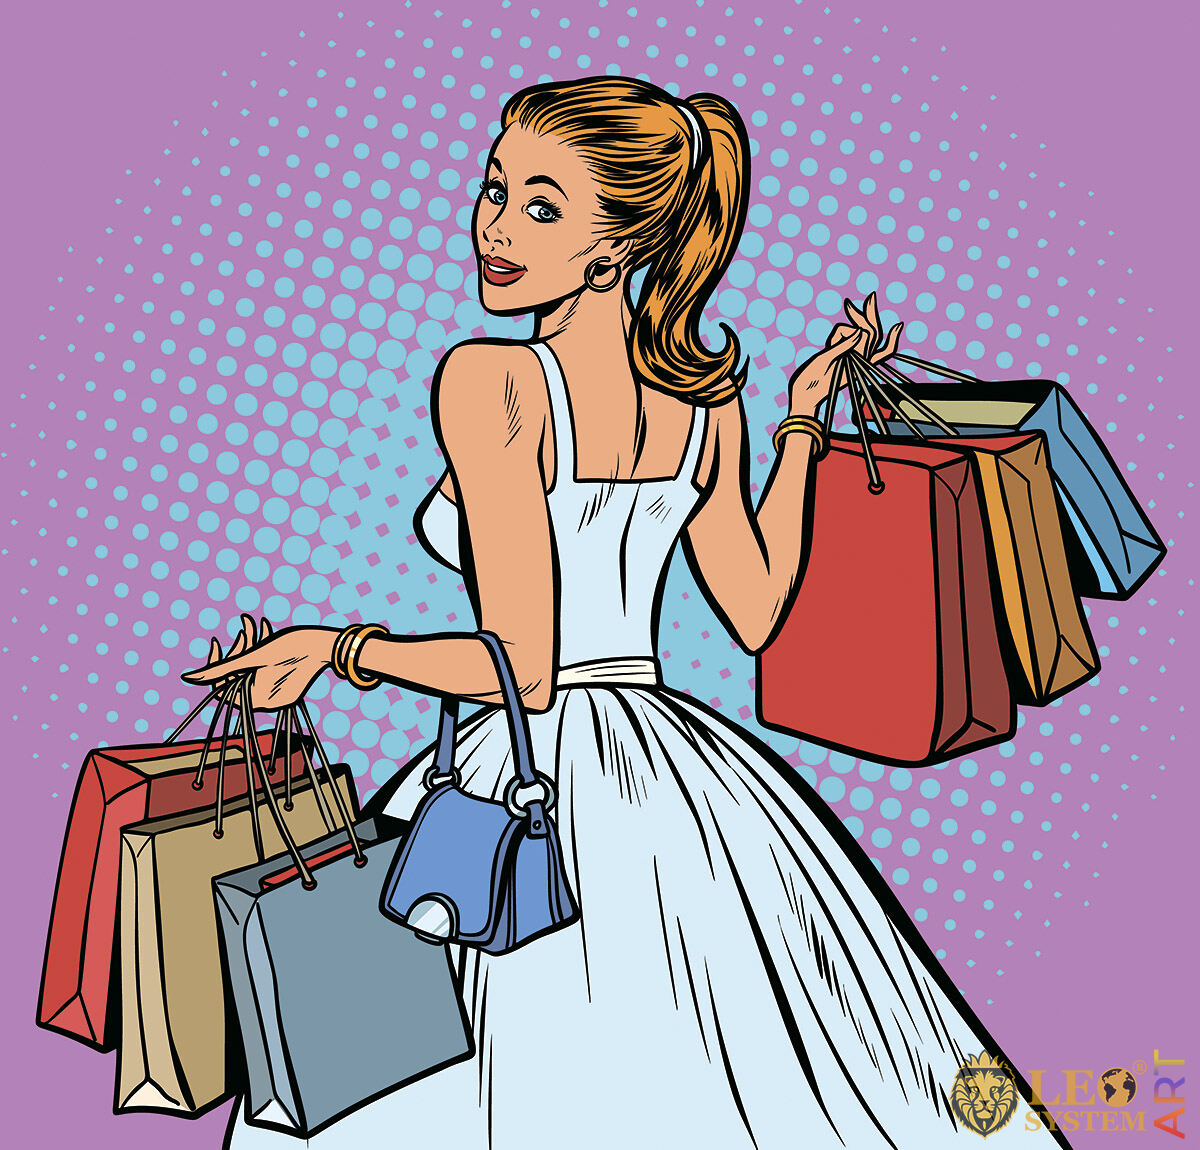 Girl in a beautiful dress and with purchases in her hands